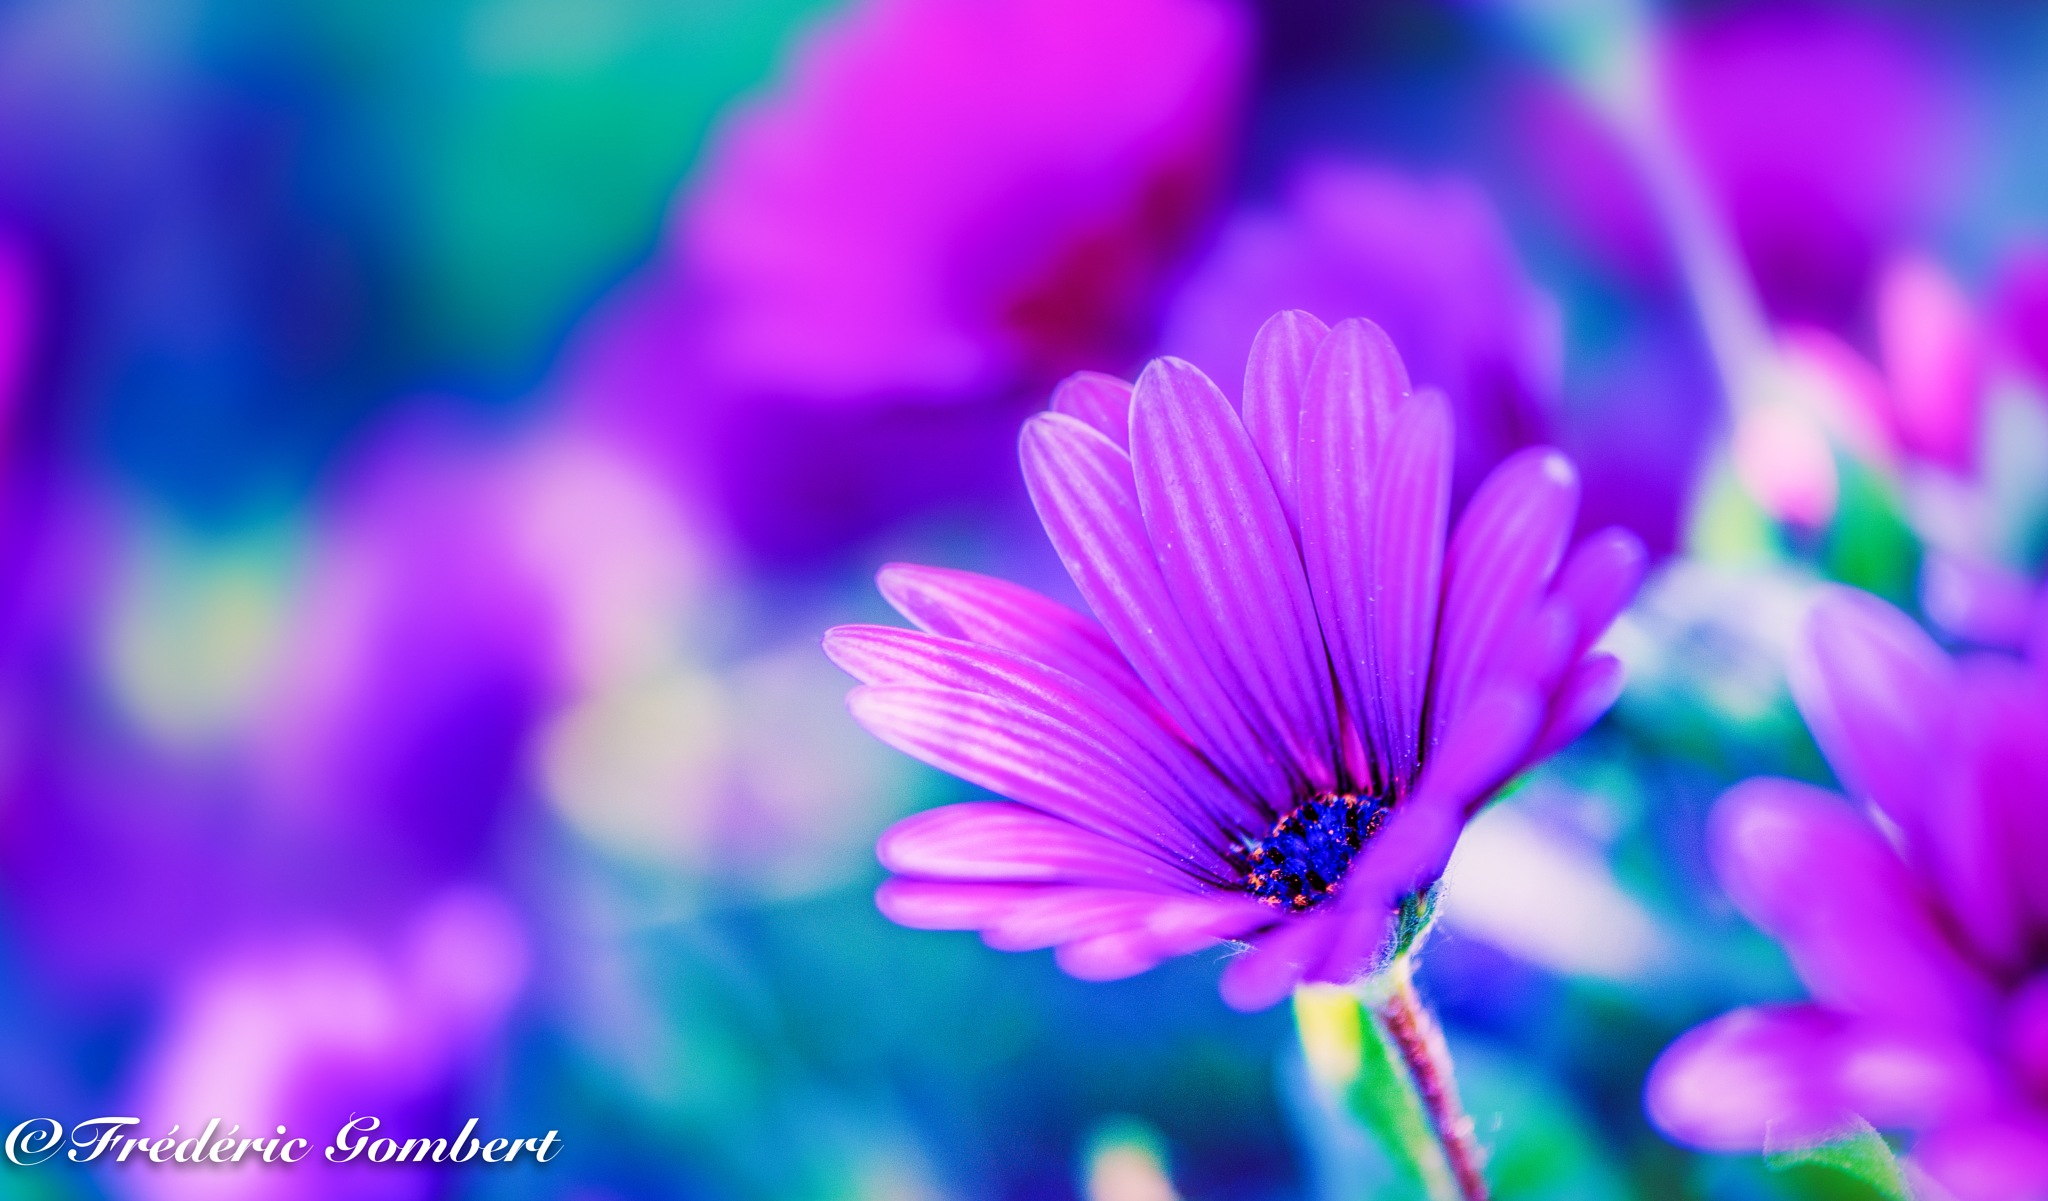 Pink burning ember by Frederic Gombert